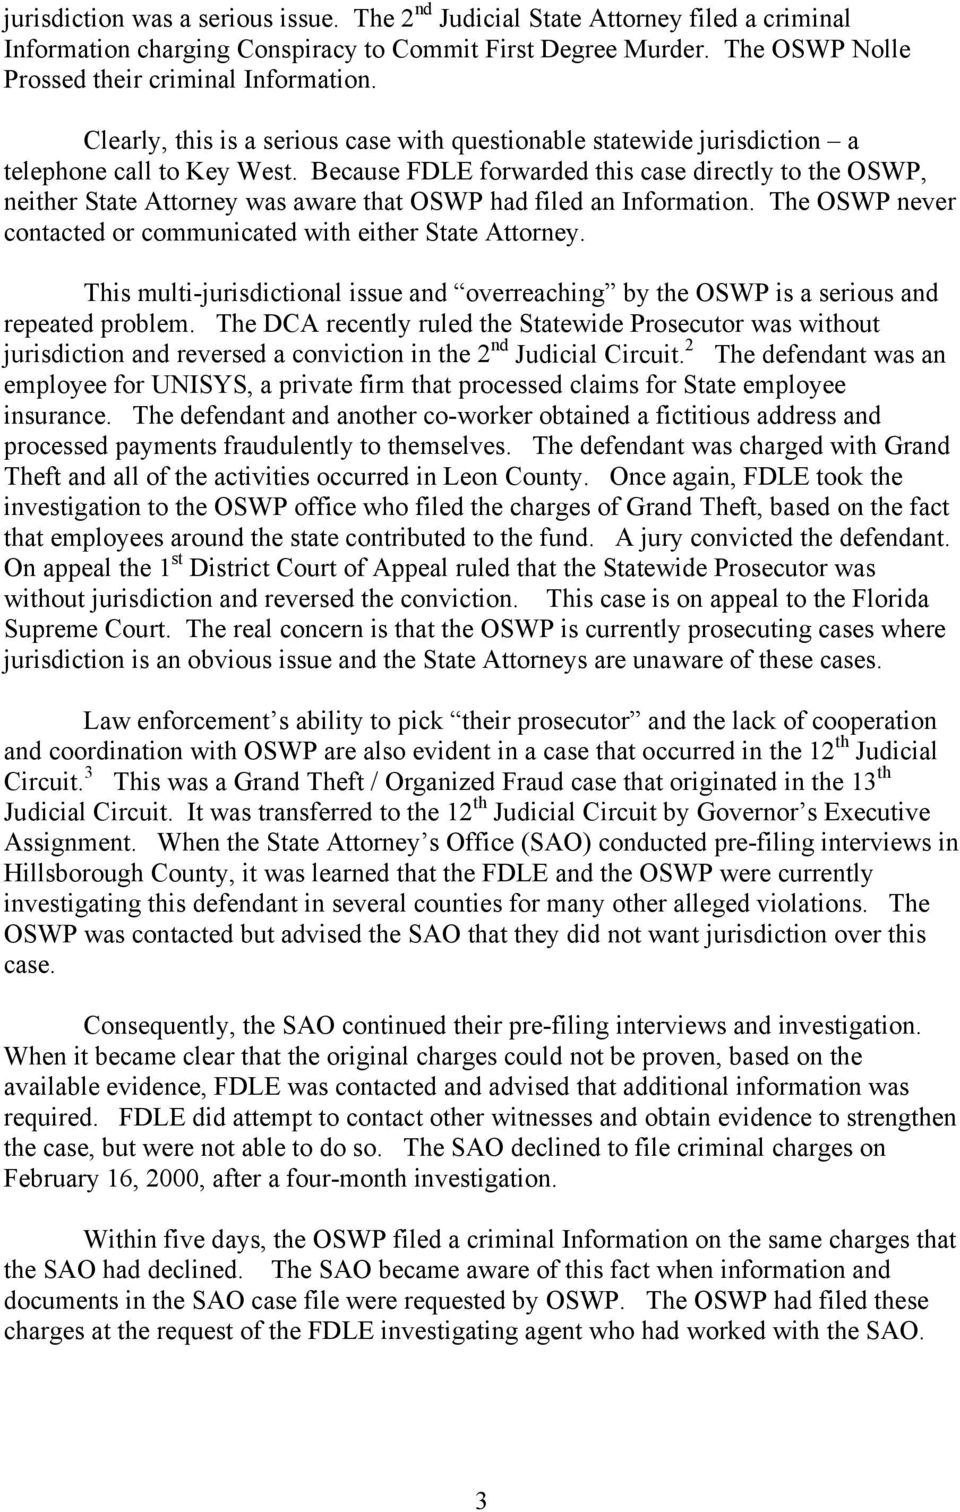 Because FDLE forwarded this case directly to the OSWP, neither State Attorney was aware that OSWP had filed an Information. The OSWP never contacted or communicated with either State Attorney.